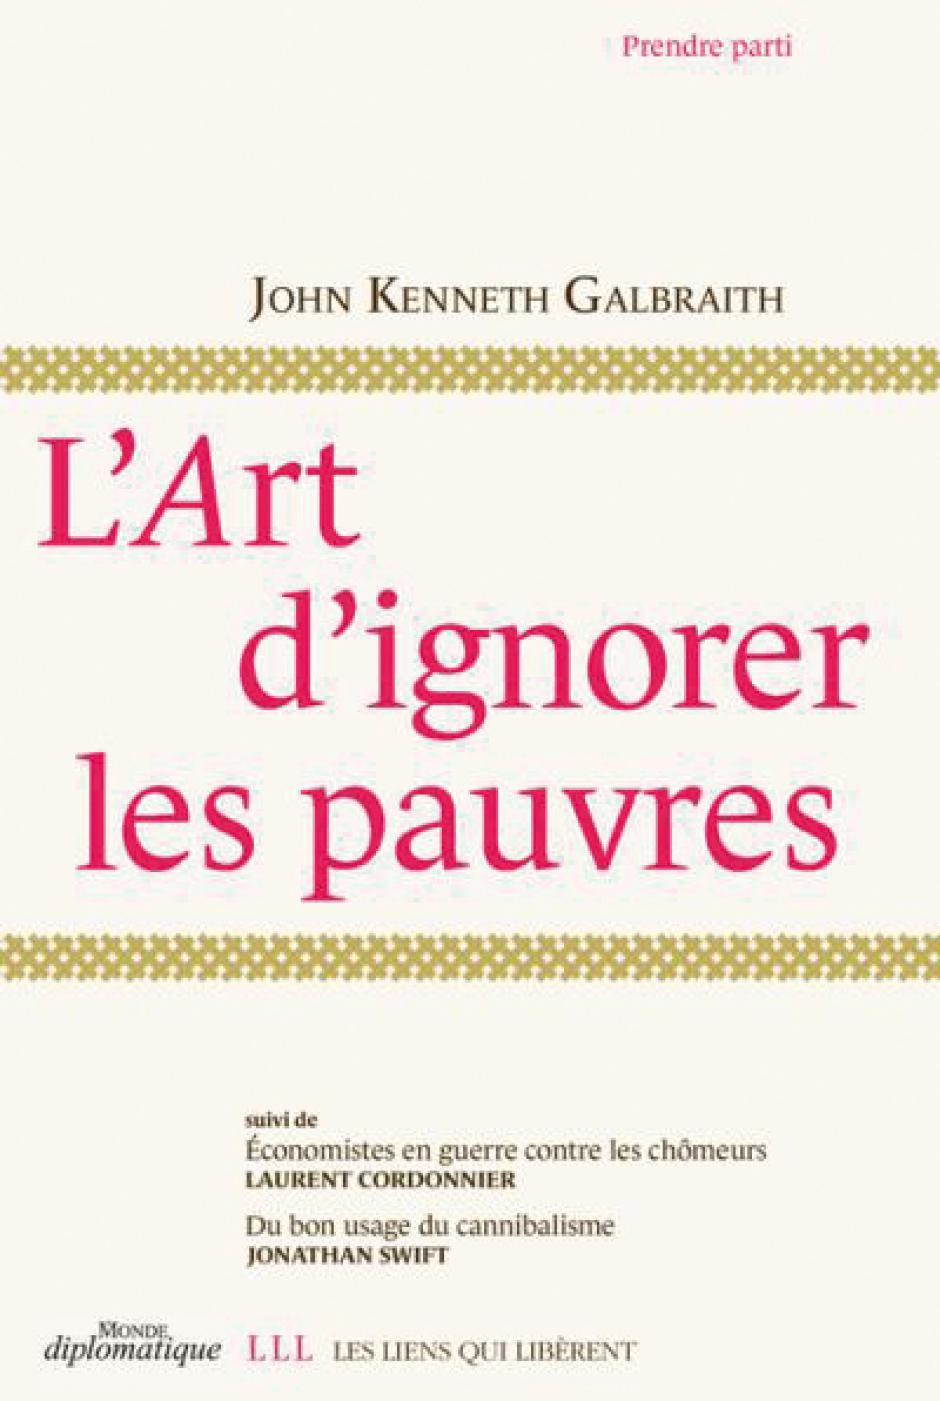 L'Art d'ignorer les pauvres, John Kenneth Galbraith, Laurent Cordonnier et Jonathan Swift